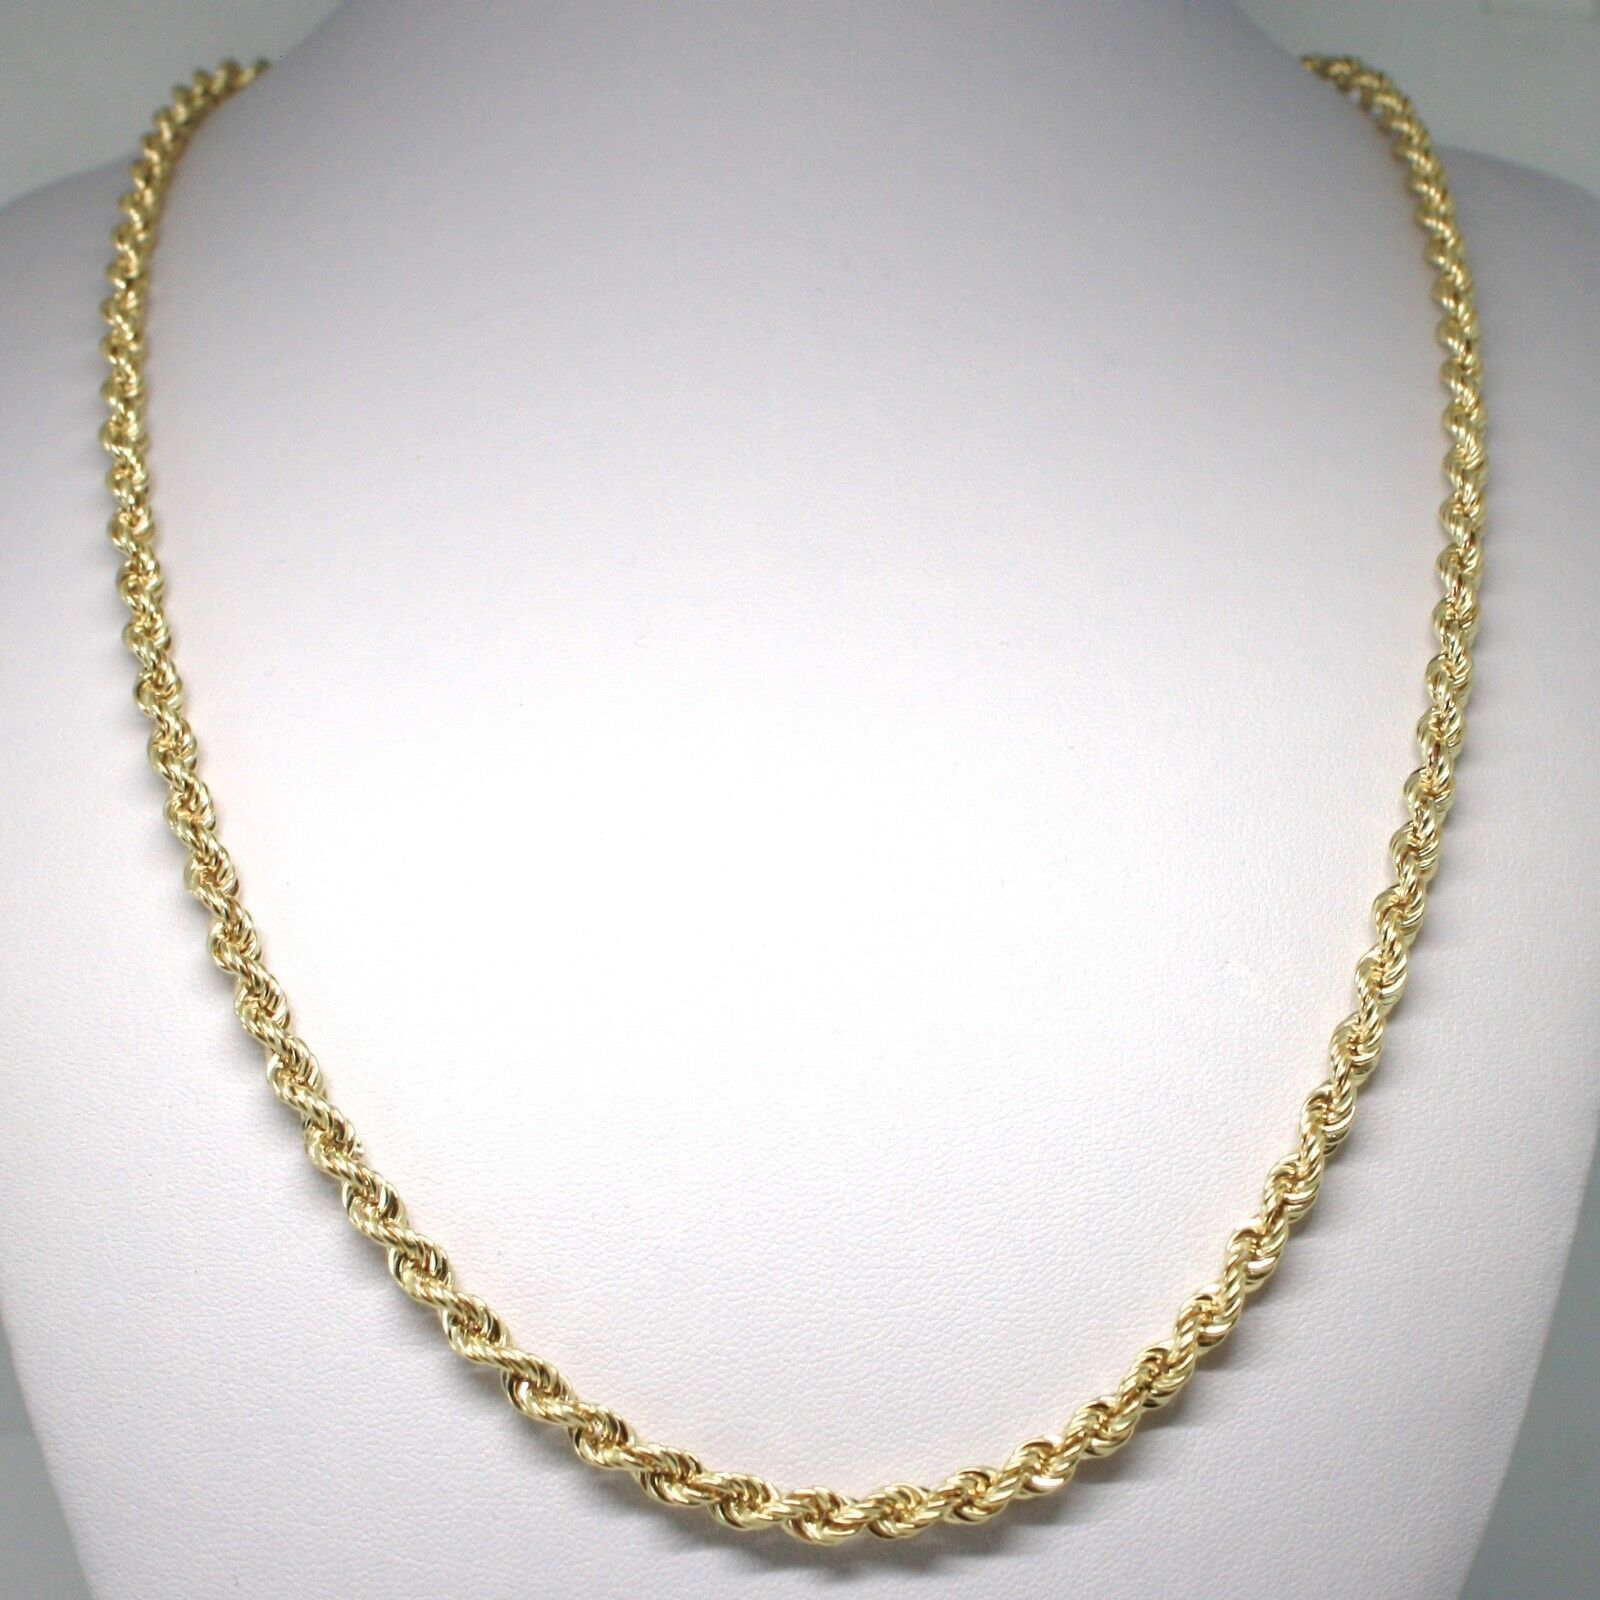 18K YELLOW GOLD CHAIN NECKLACE 5 MM BIG BRAID ROPE LINK 23.60 IN. MADE IN ITALY